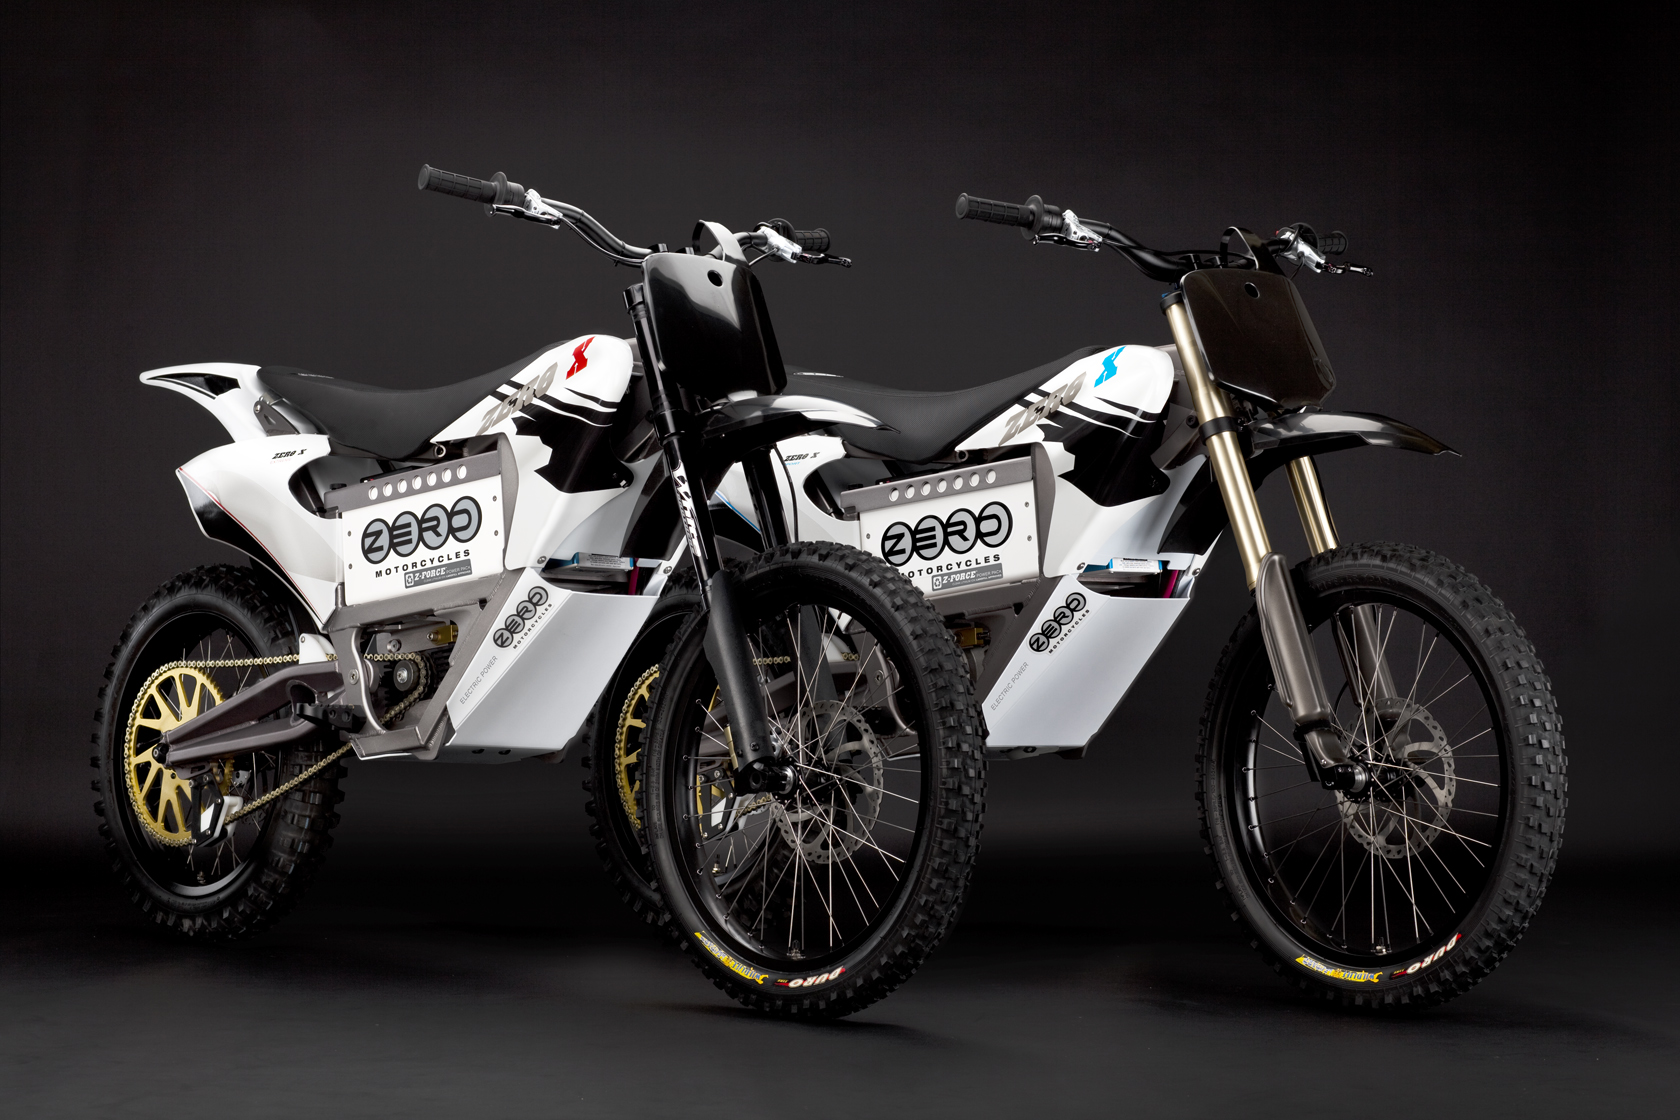 '.2010 Zero X Electric Motorcycle: Pair.'